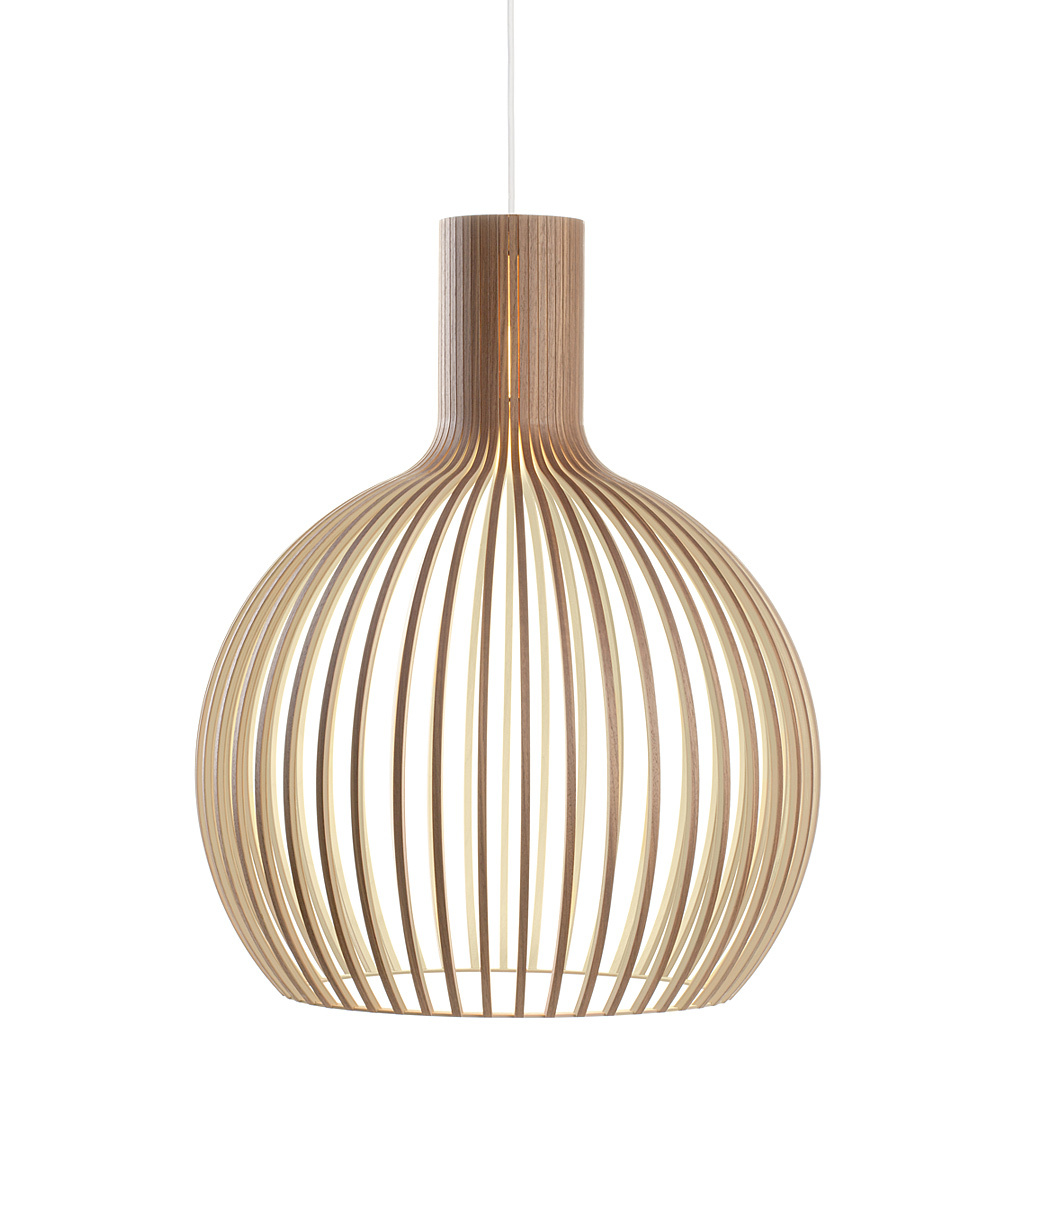 Hedendaags Octo 4240 wooden modern pendant lamp Secto Design   Secto Design DD-73